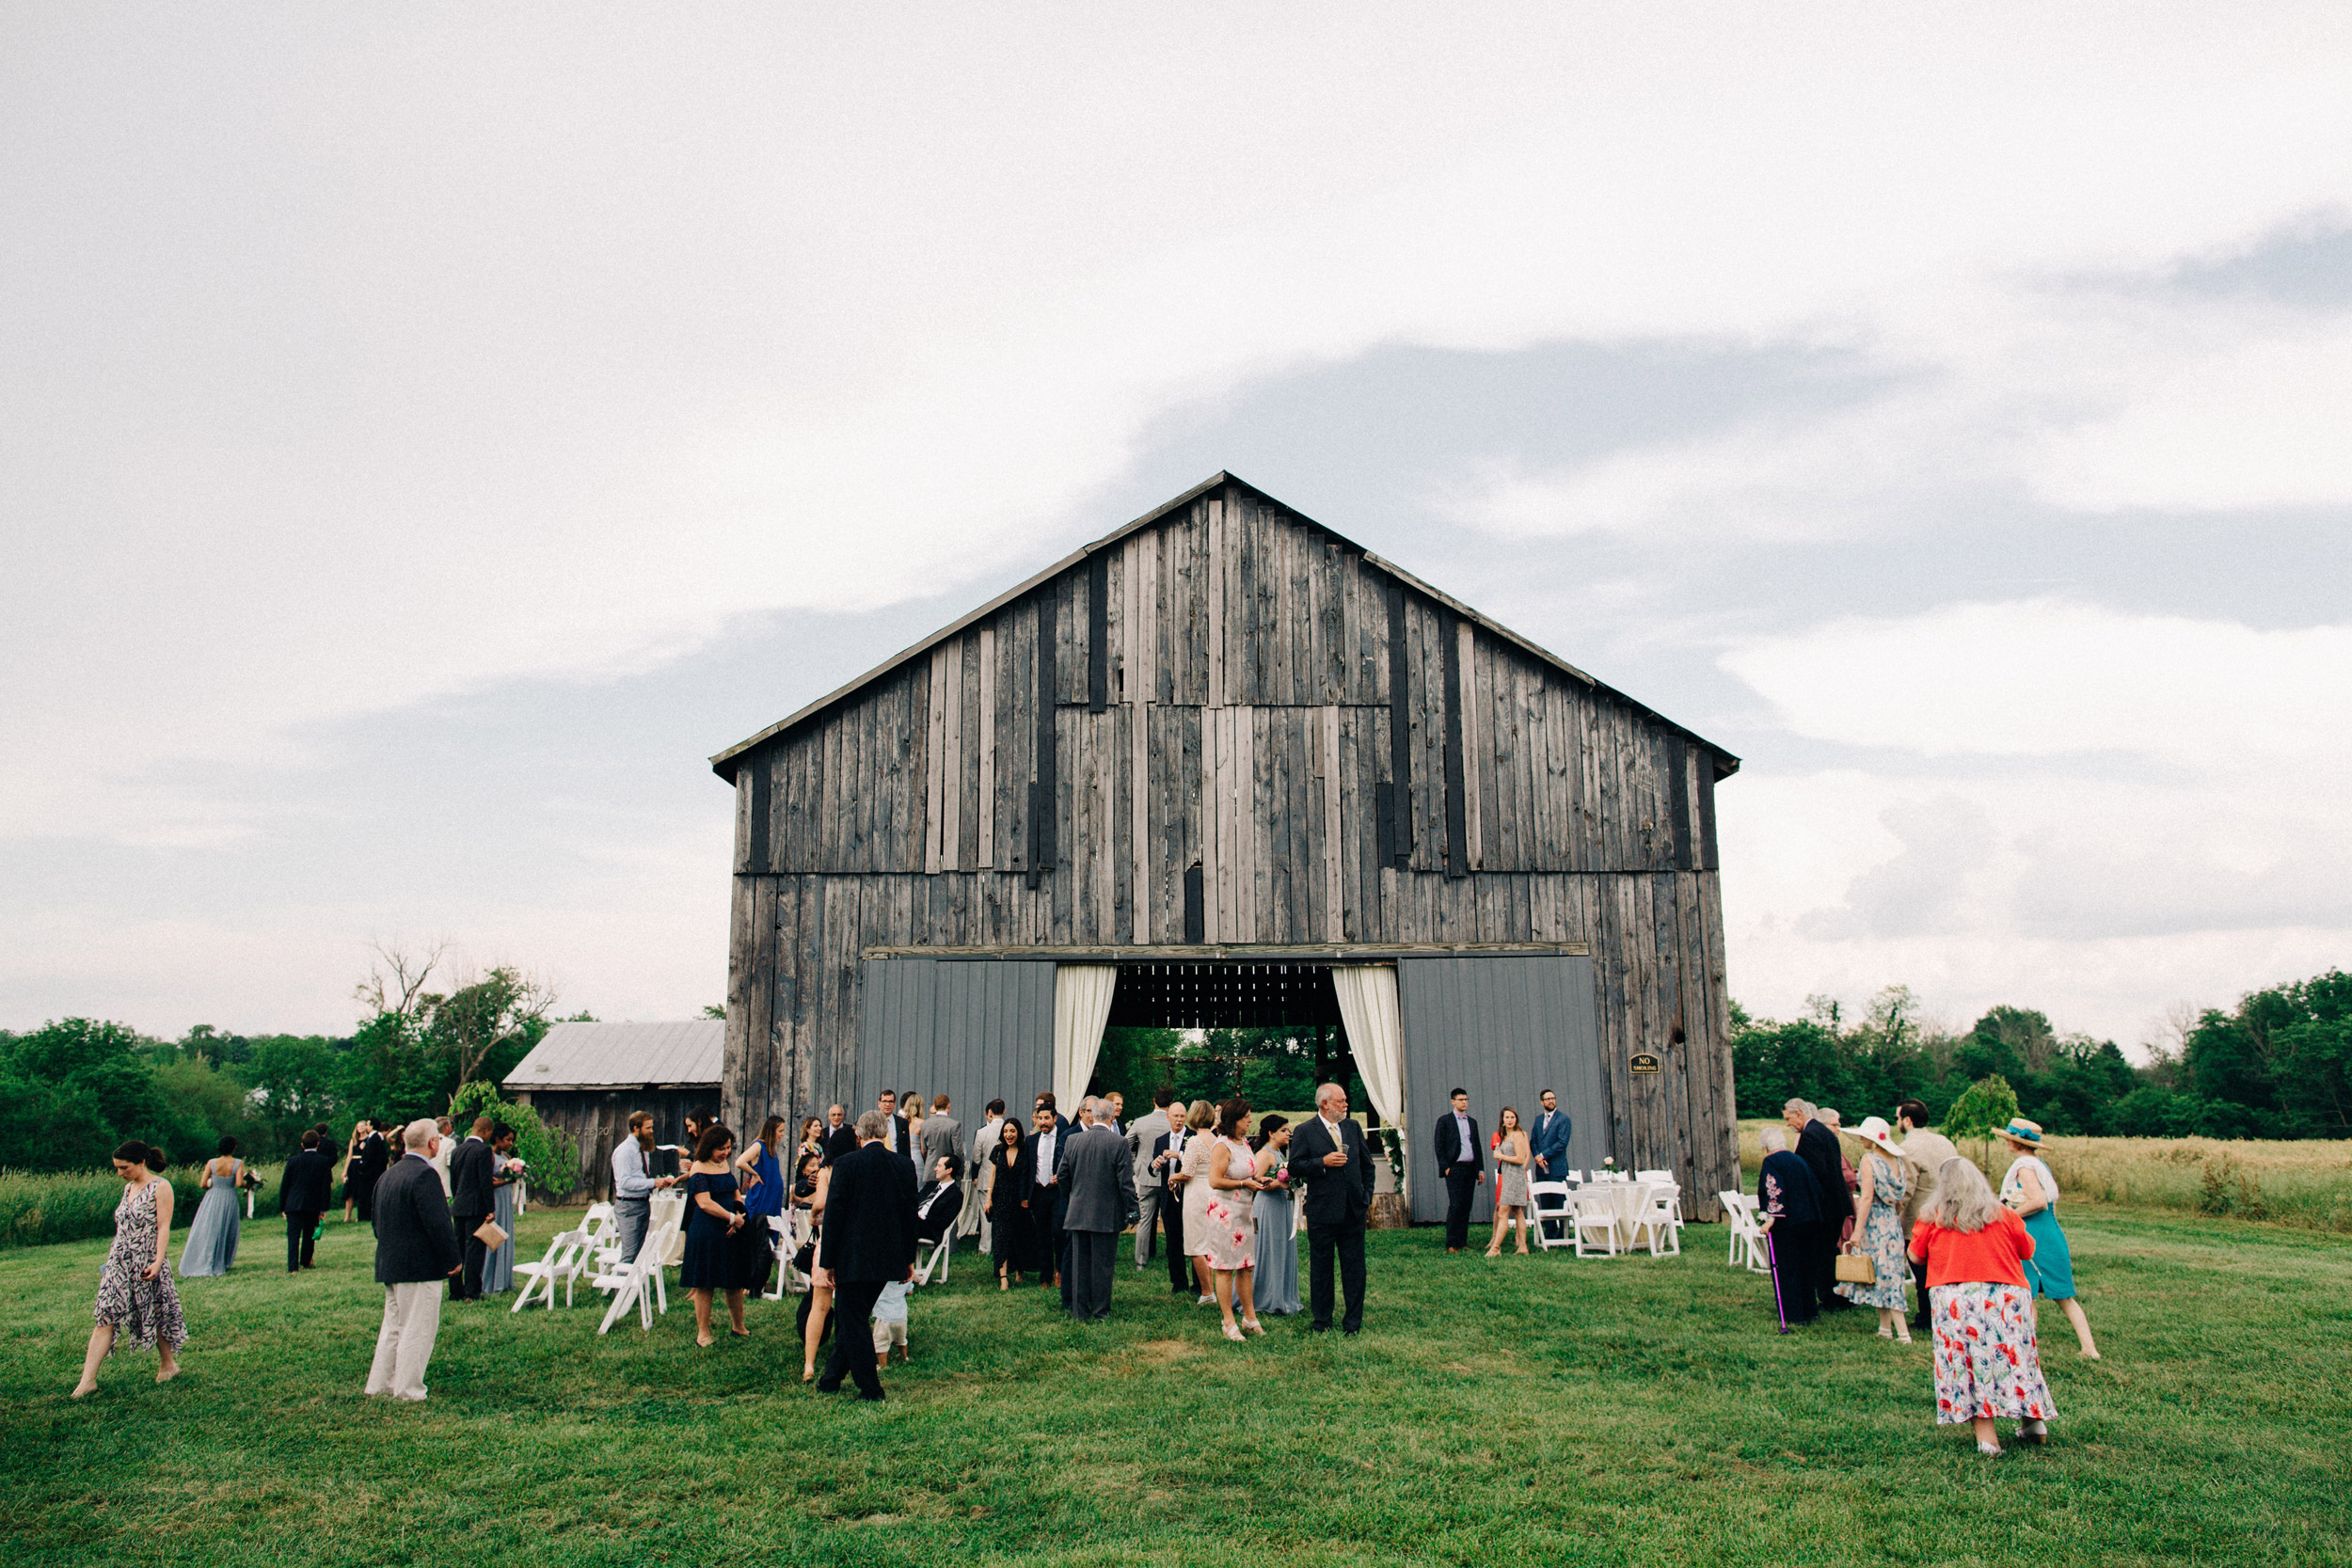 walnut-way-farm-wedding-photographer-08.JPG